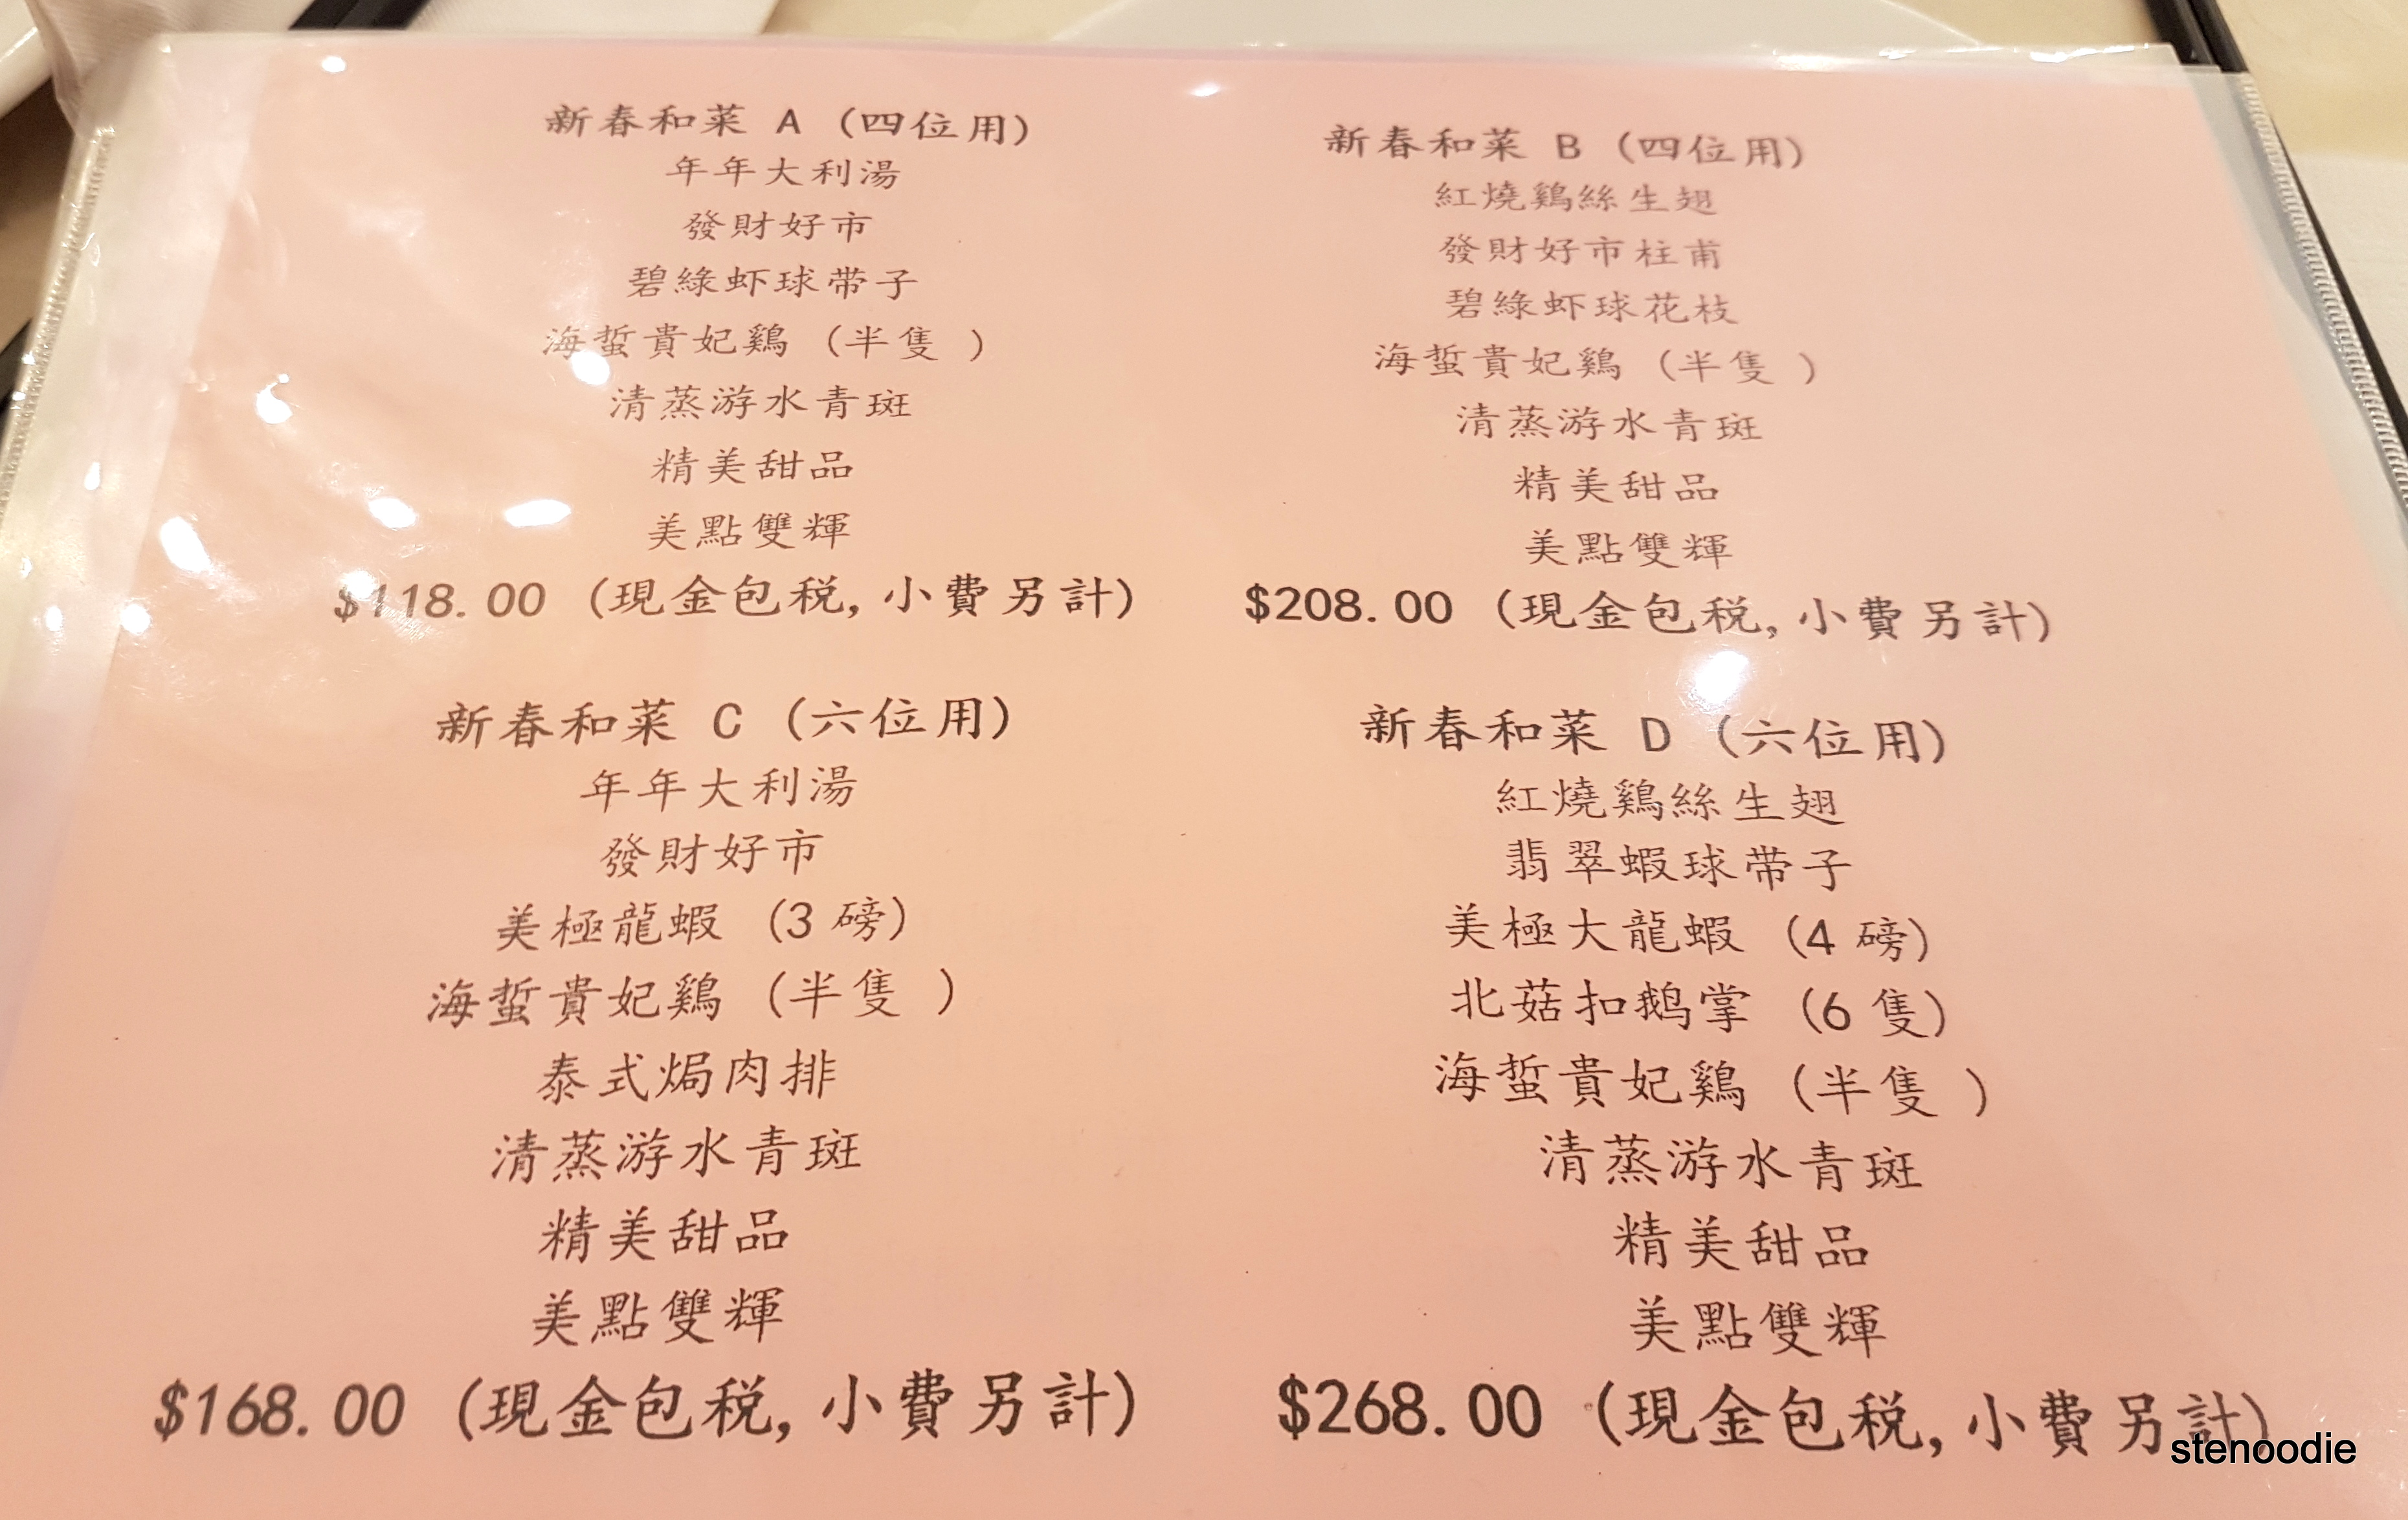 Ritzy Palace Chinese Cuisine set menu and prices